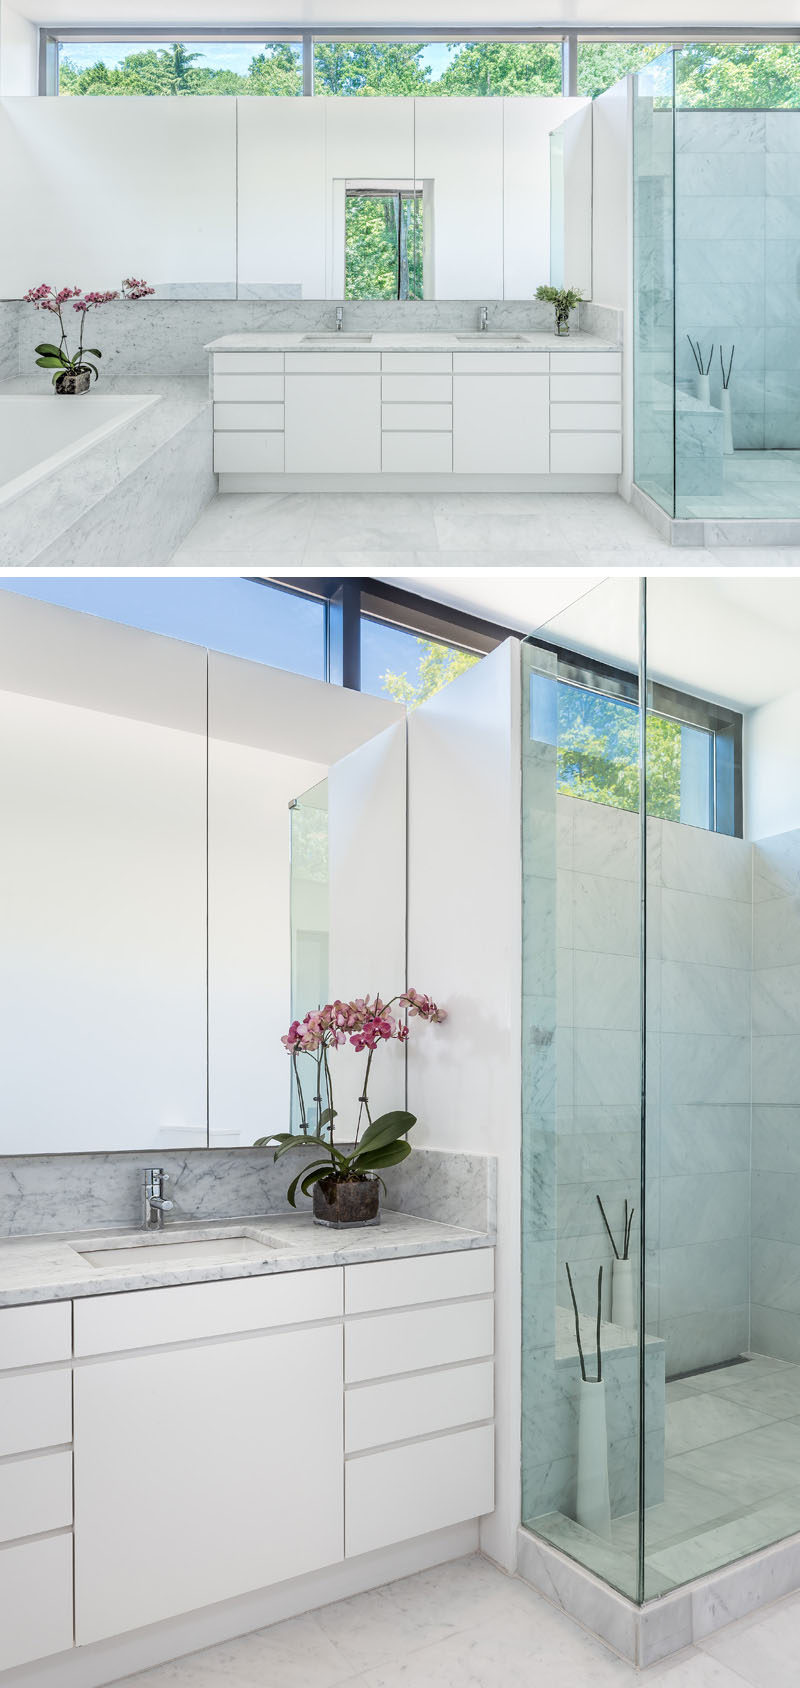 In this modern bathroom, minimalist white cabinets and a large mirror have been used to keep the bathroom bright. #BathroomDesign #WhiteBathroom